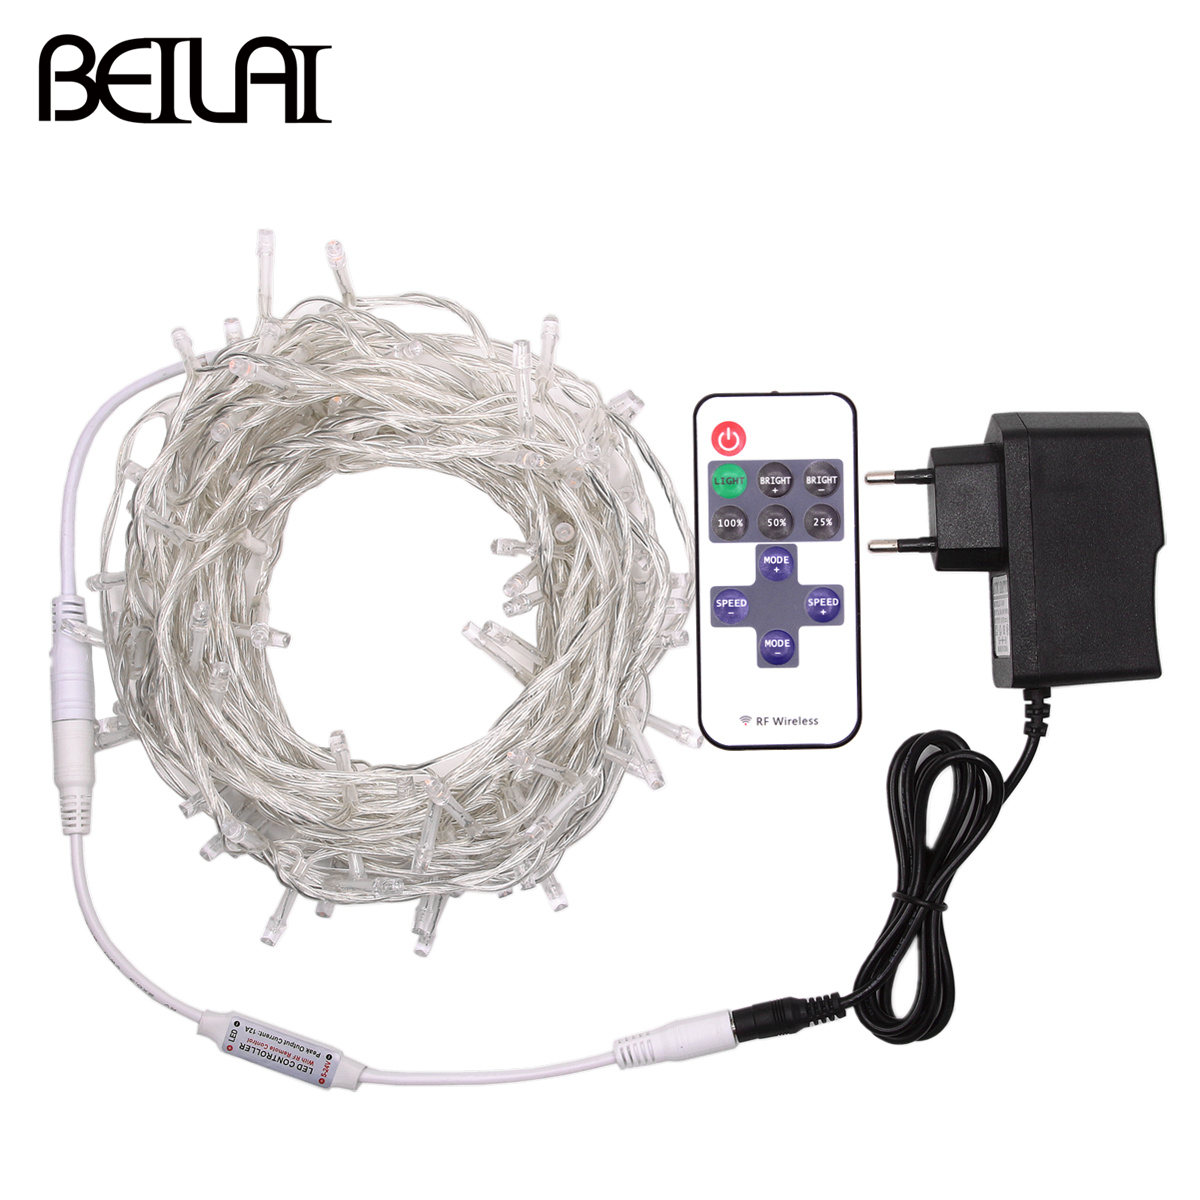 DC 12V LED String Lights 10M 20M Waterproof Garland Fairy LED Holiday Light Strip Christmas Decoration and 1A Power and Remote